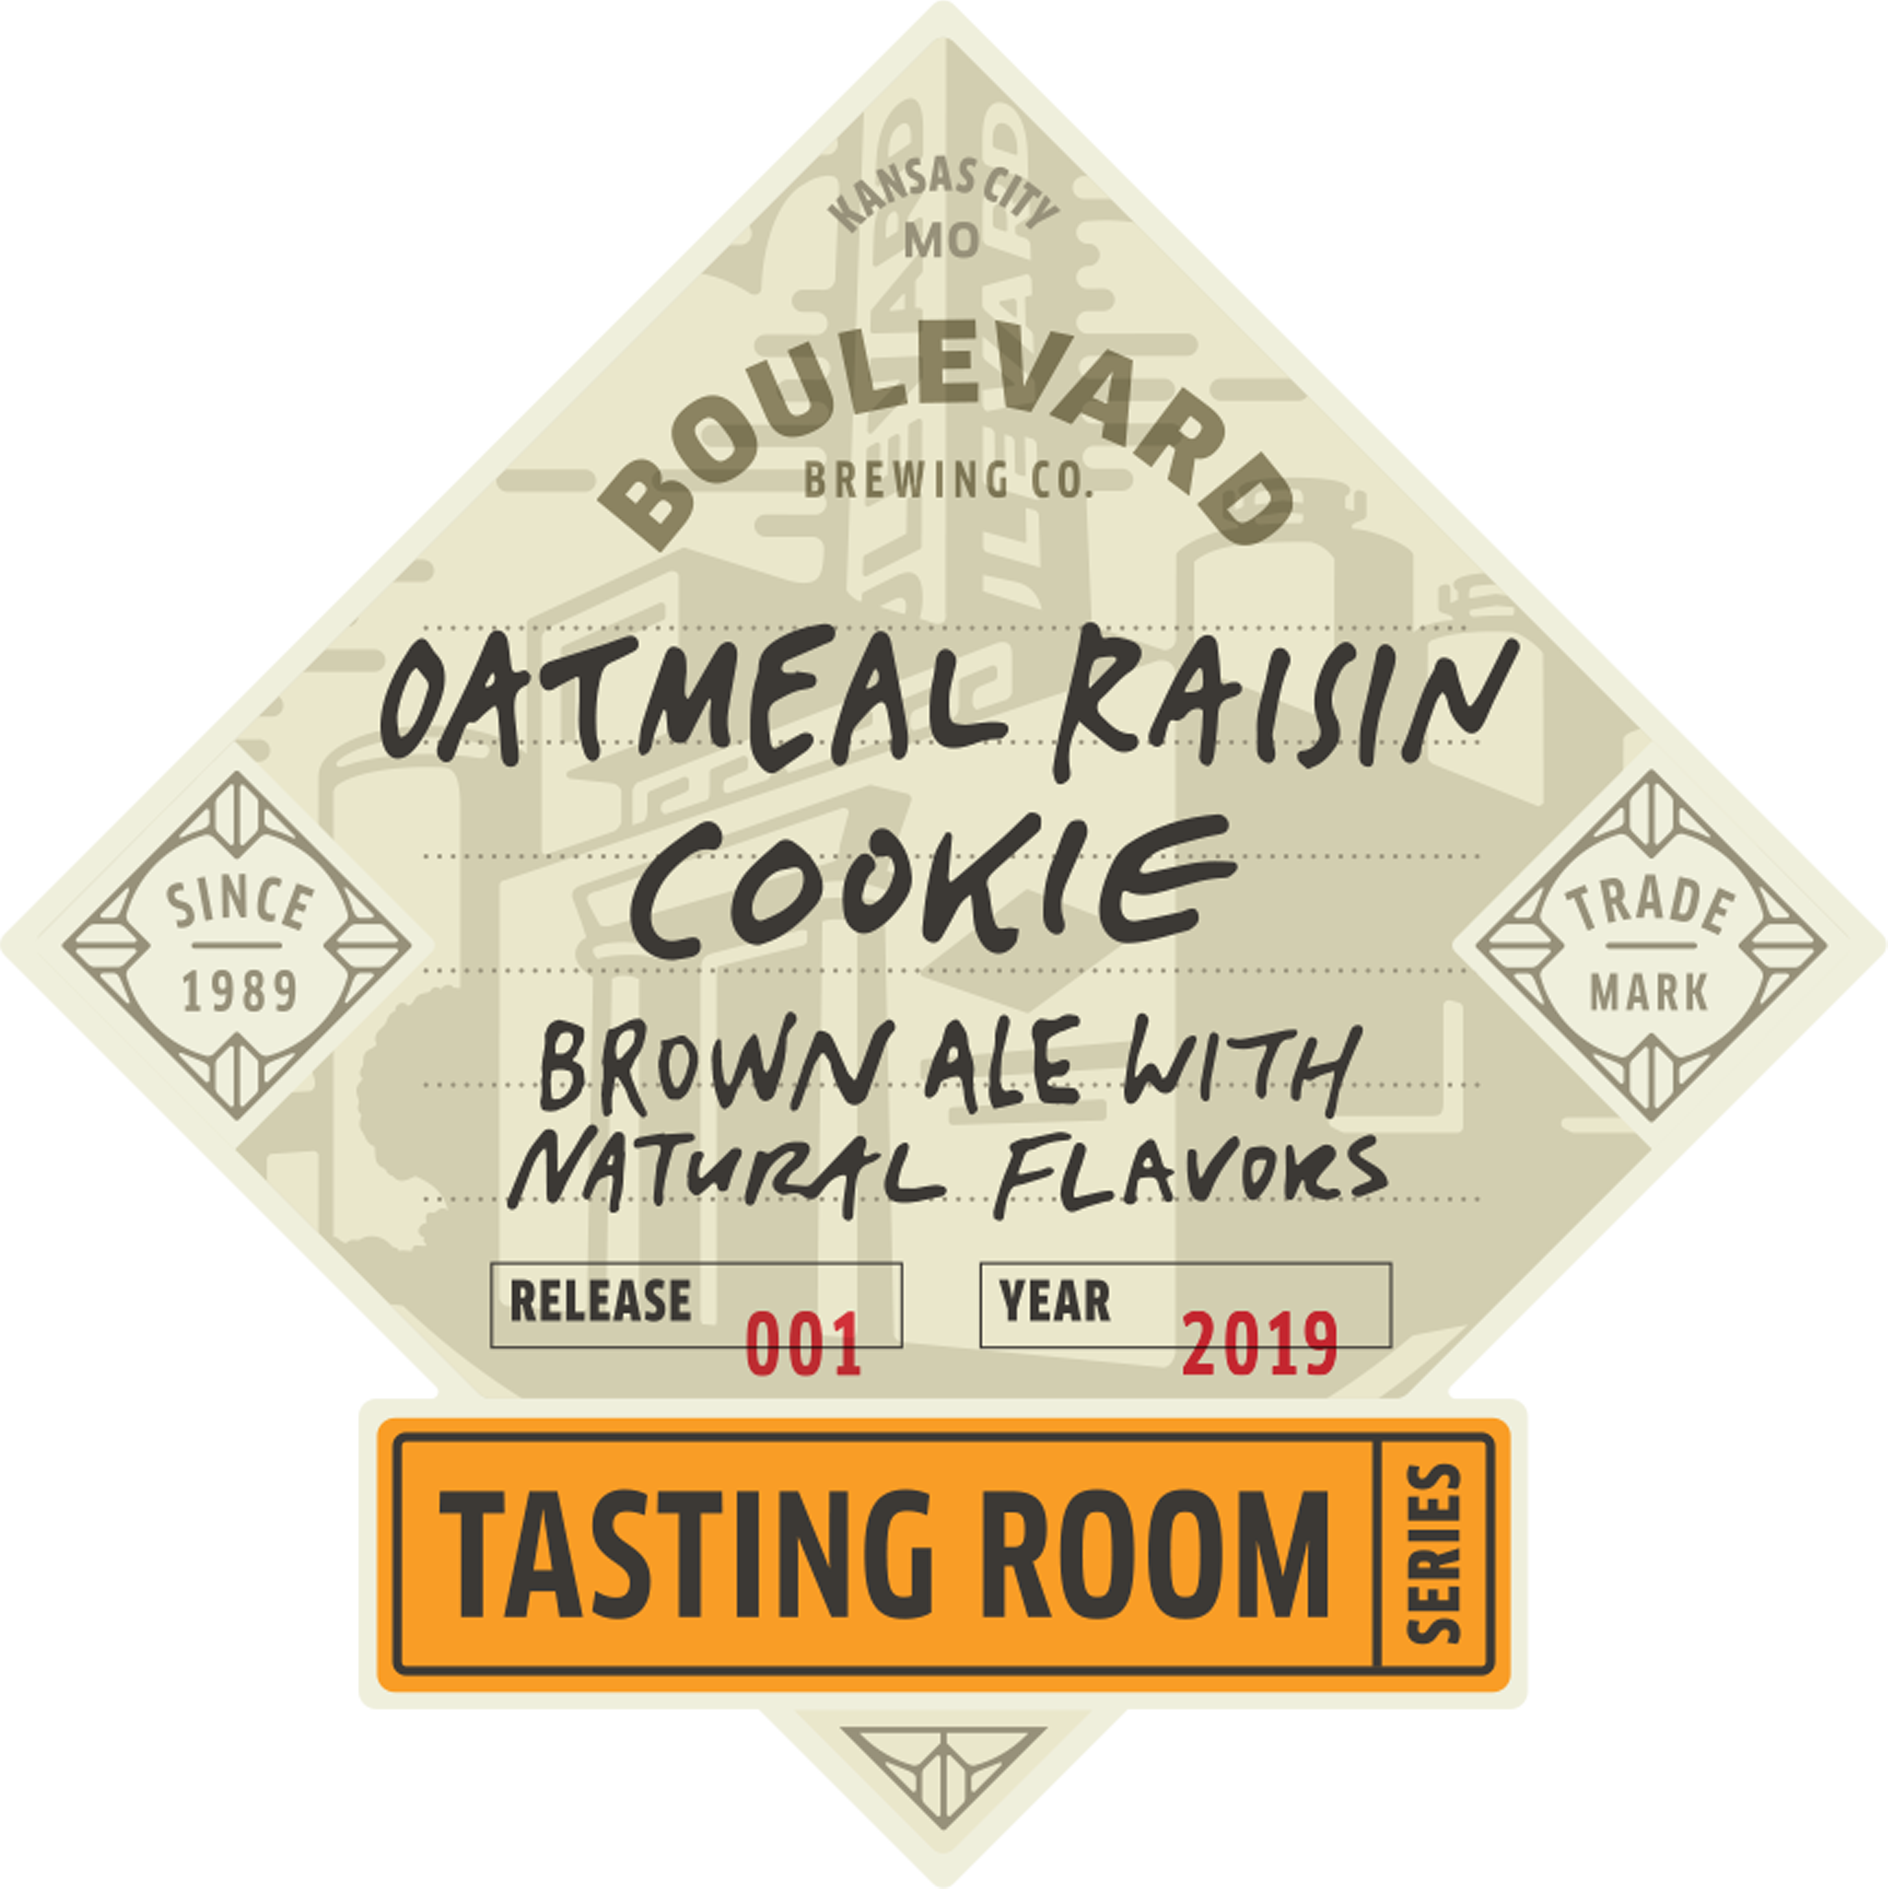 Tasting Room – Oatmeal Raisin Cookie